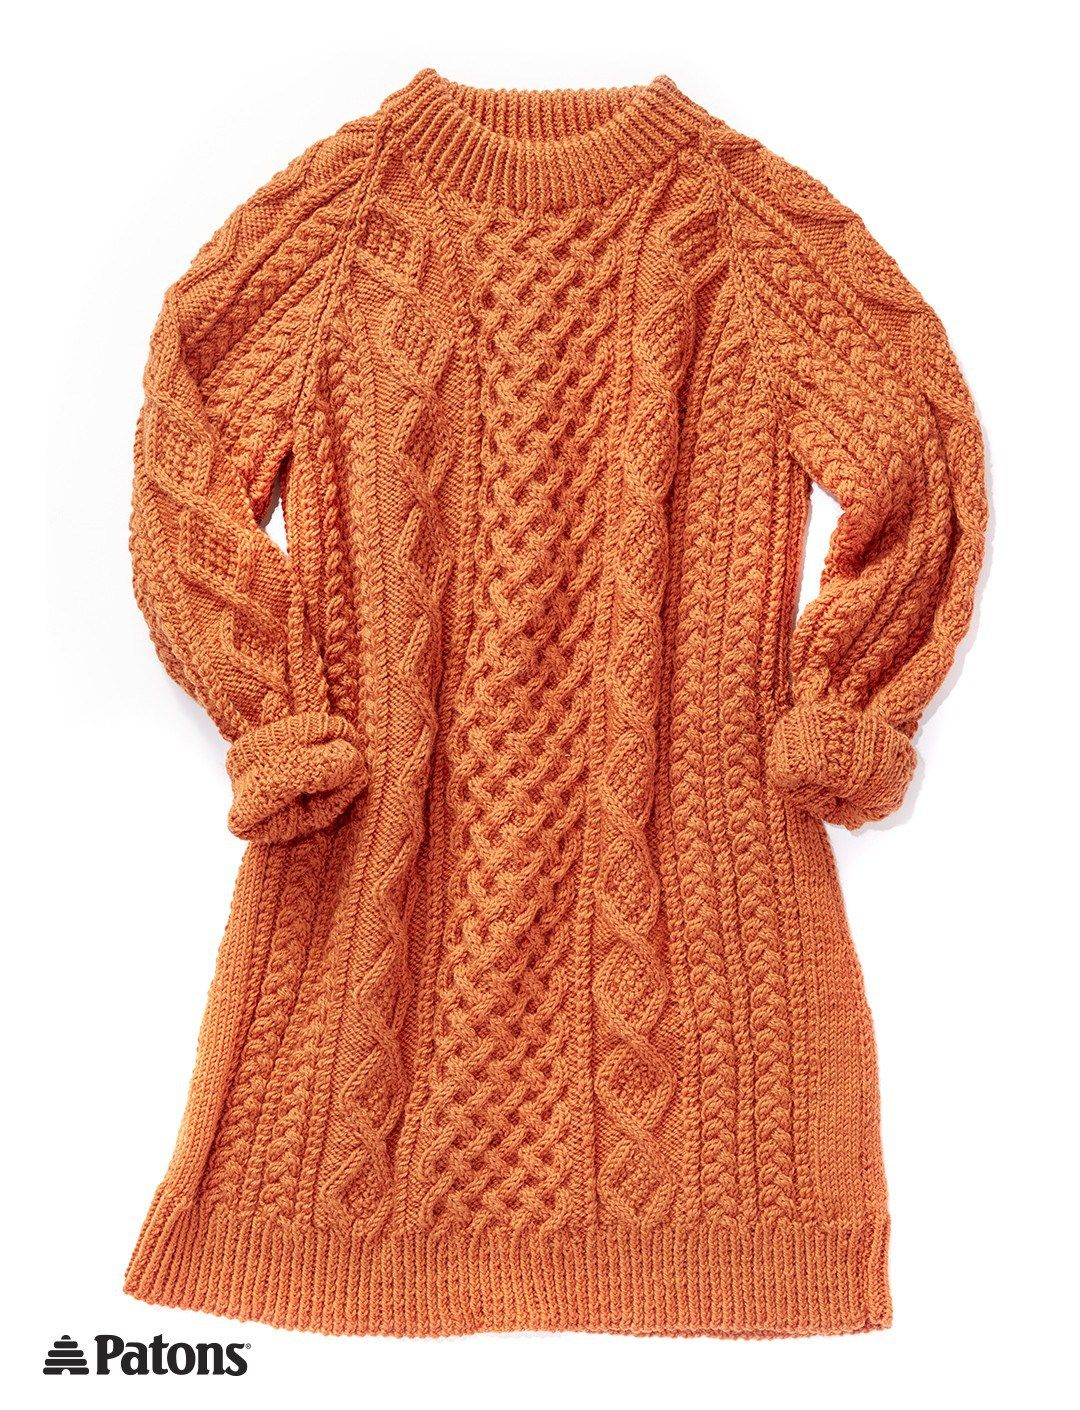 Free knitting pattern for Honeycomb Aran Sweater Dress | flette ...